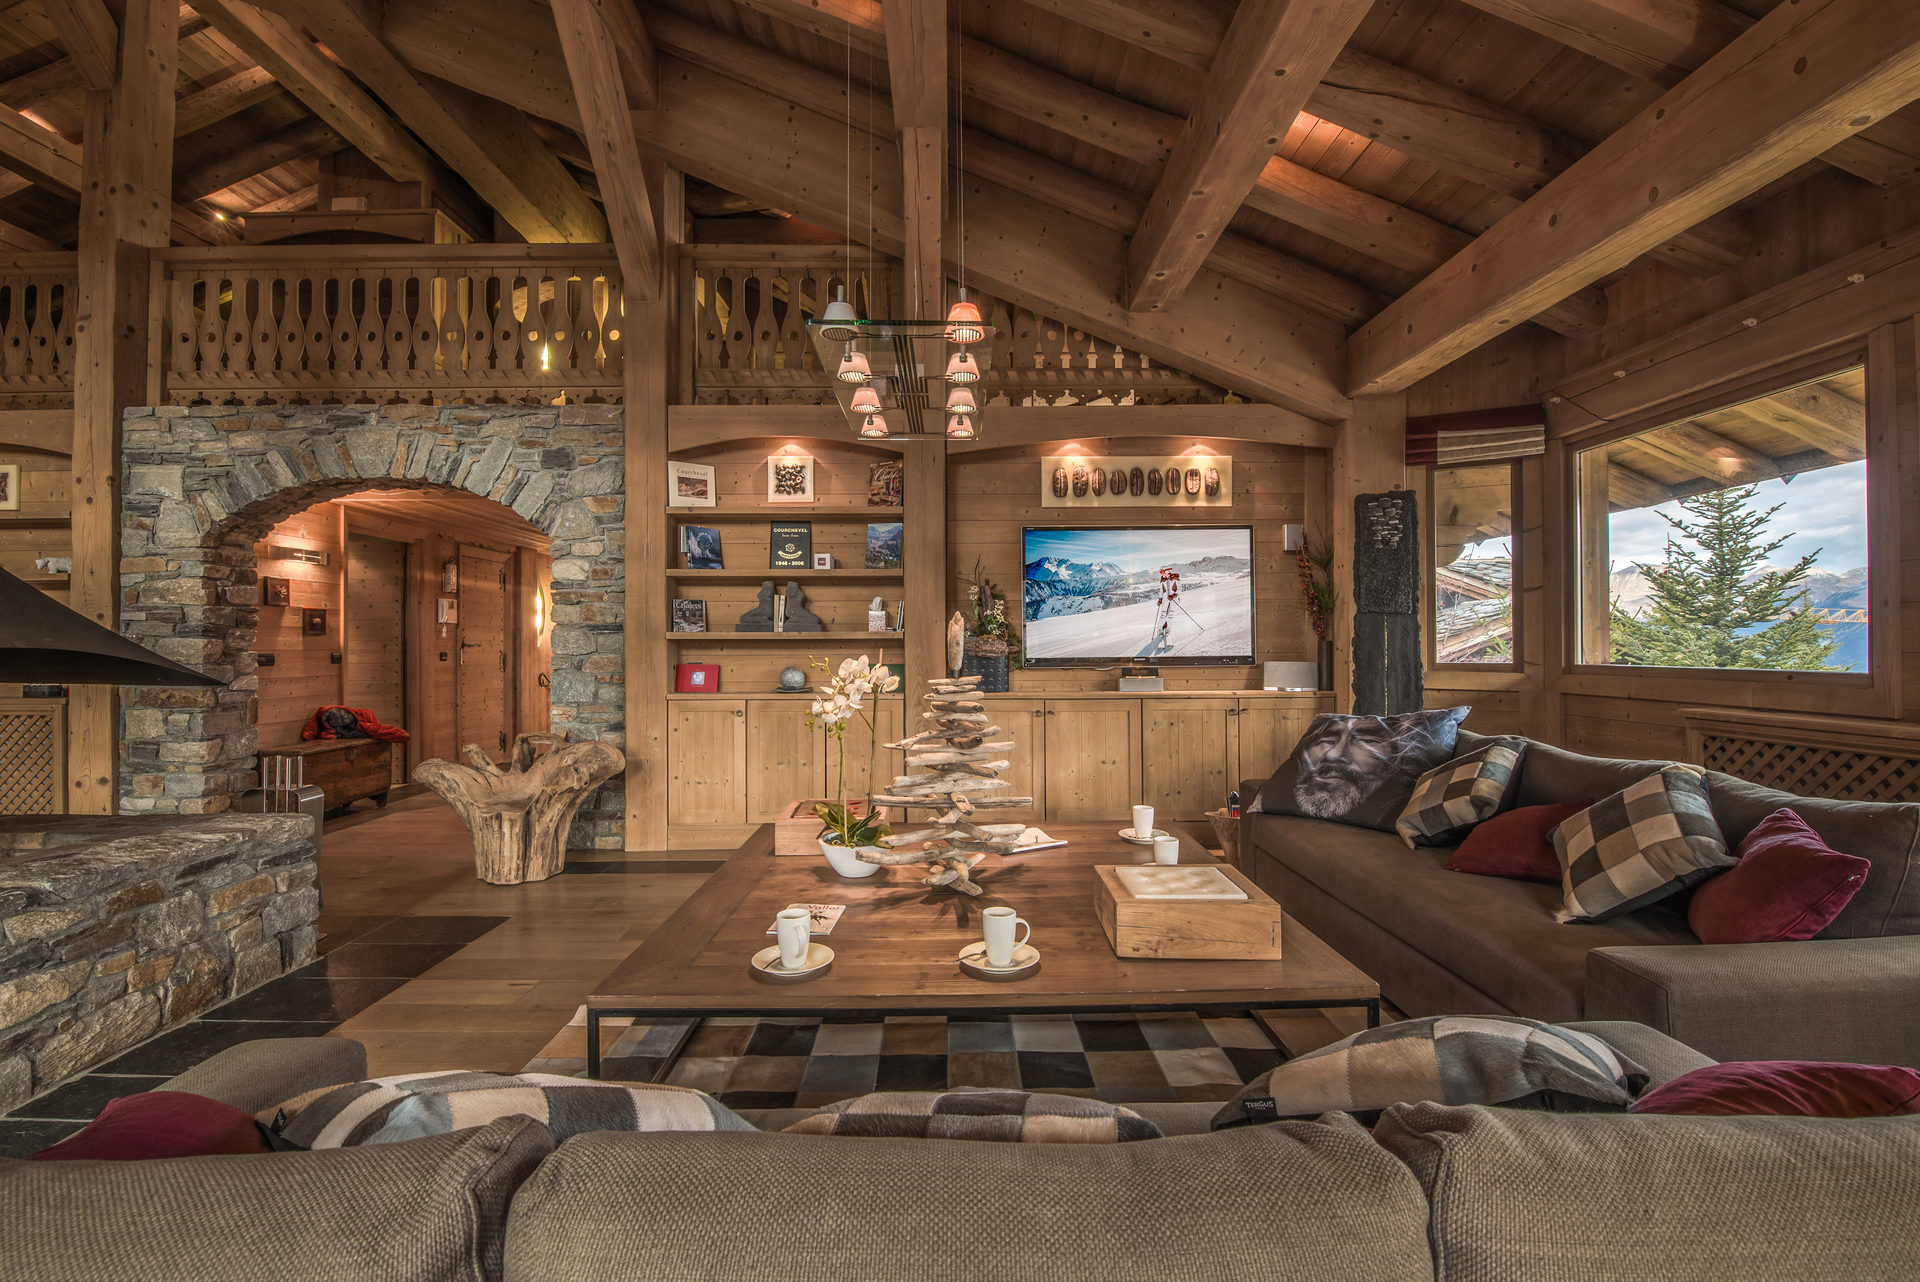 The Chalet Everest: